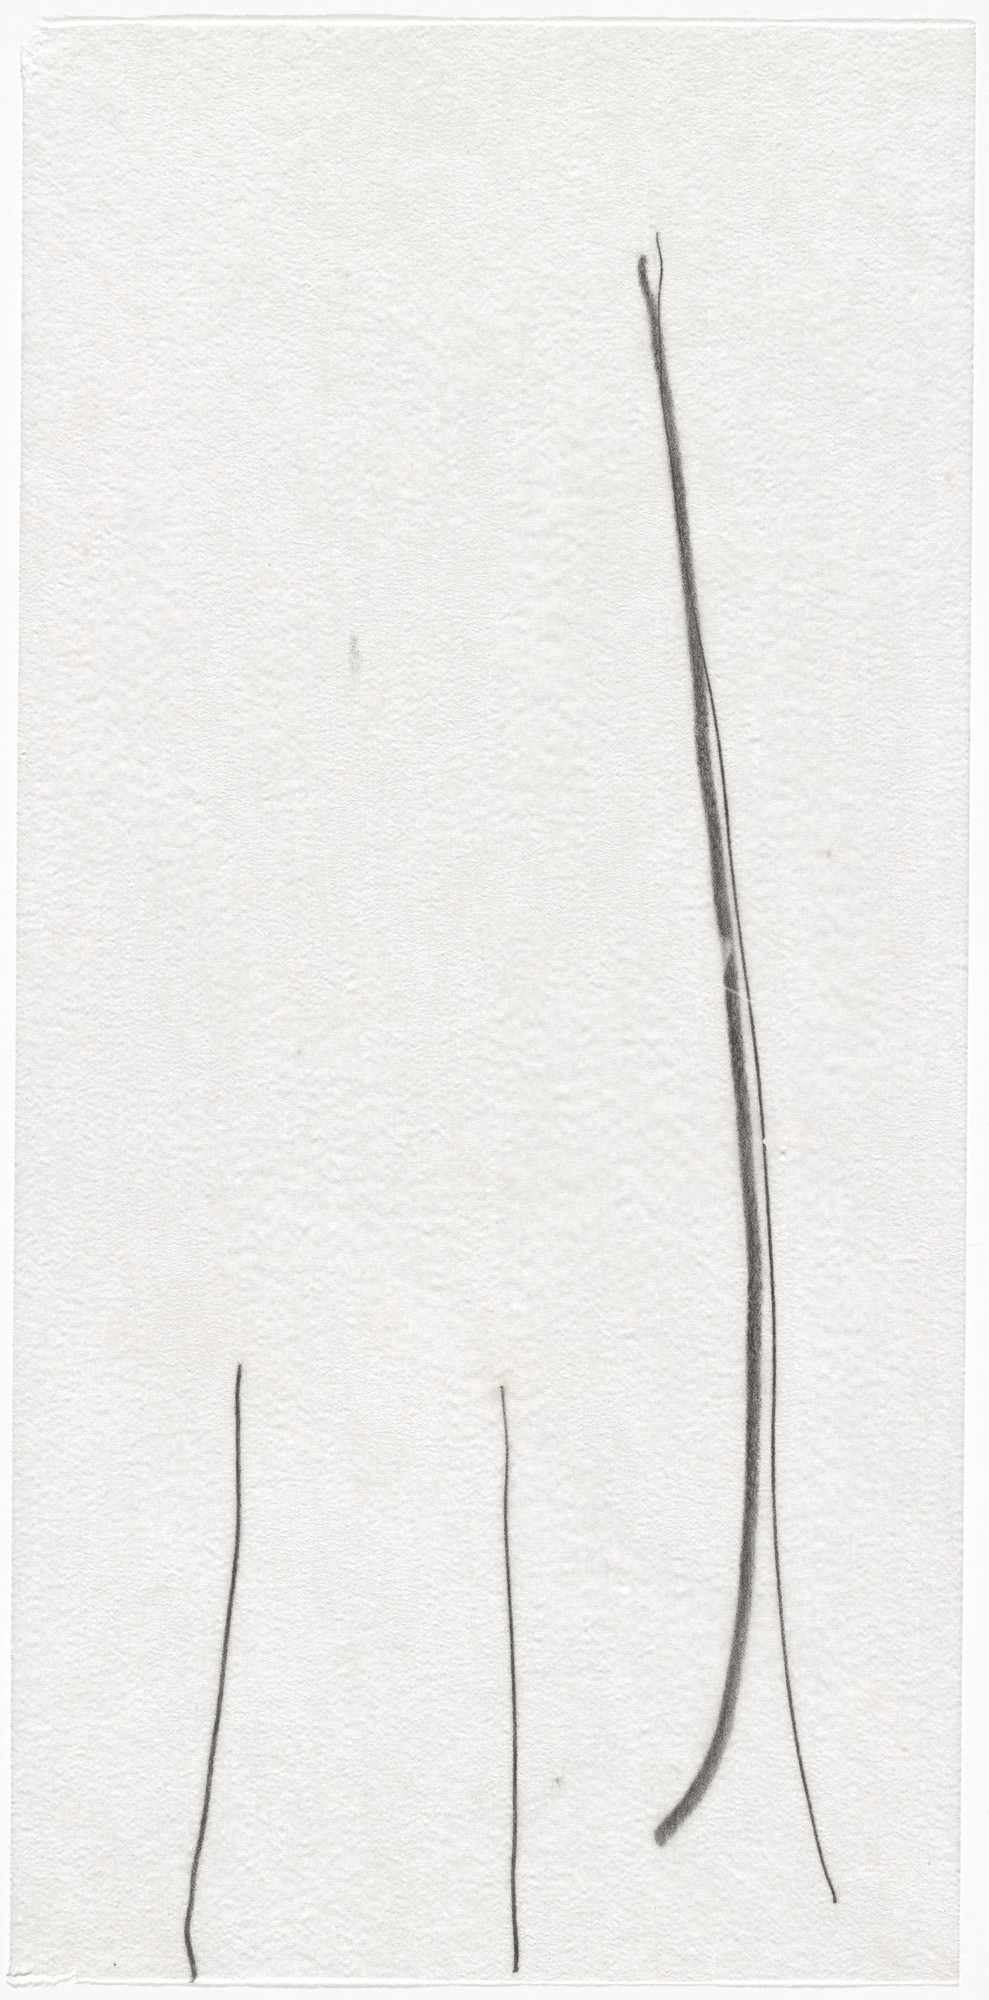 Mira Schendel. Untitled. 1960s